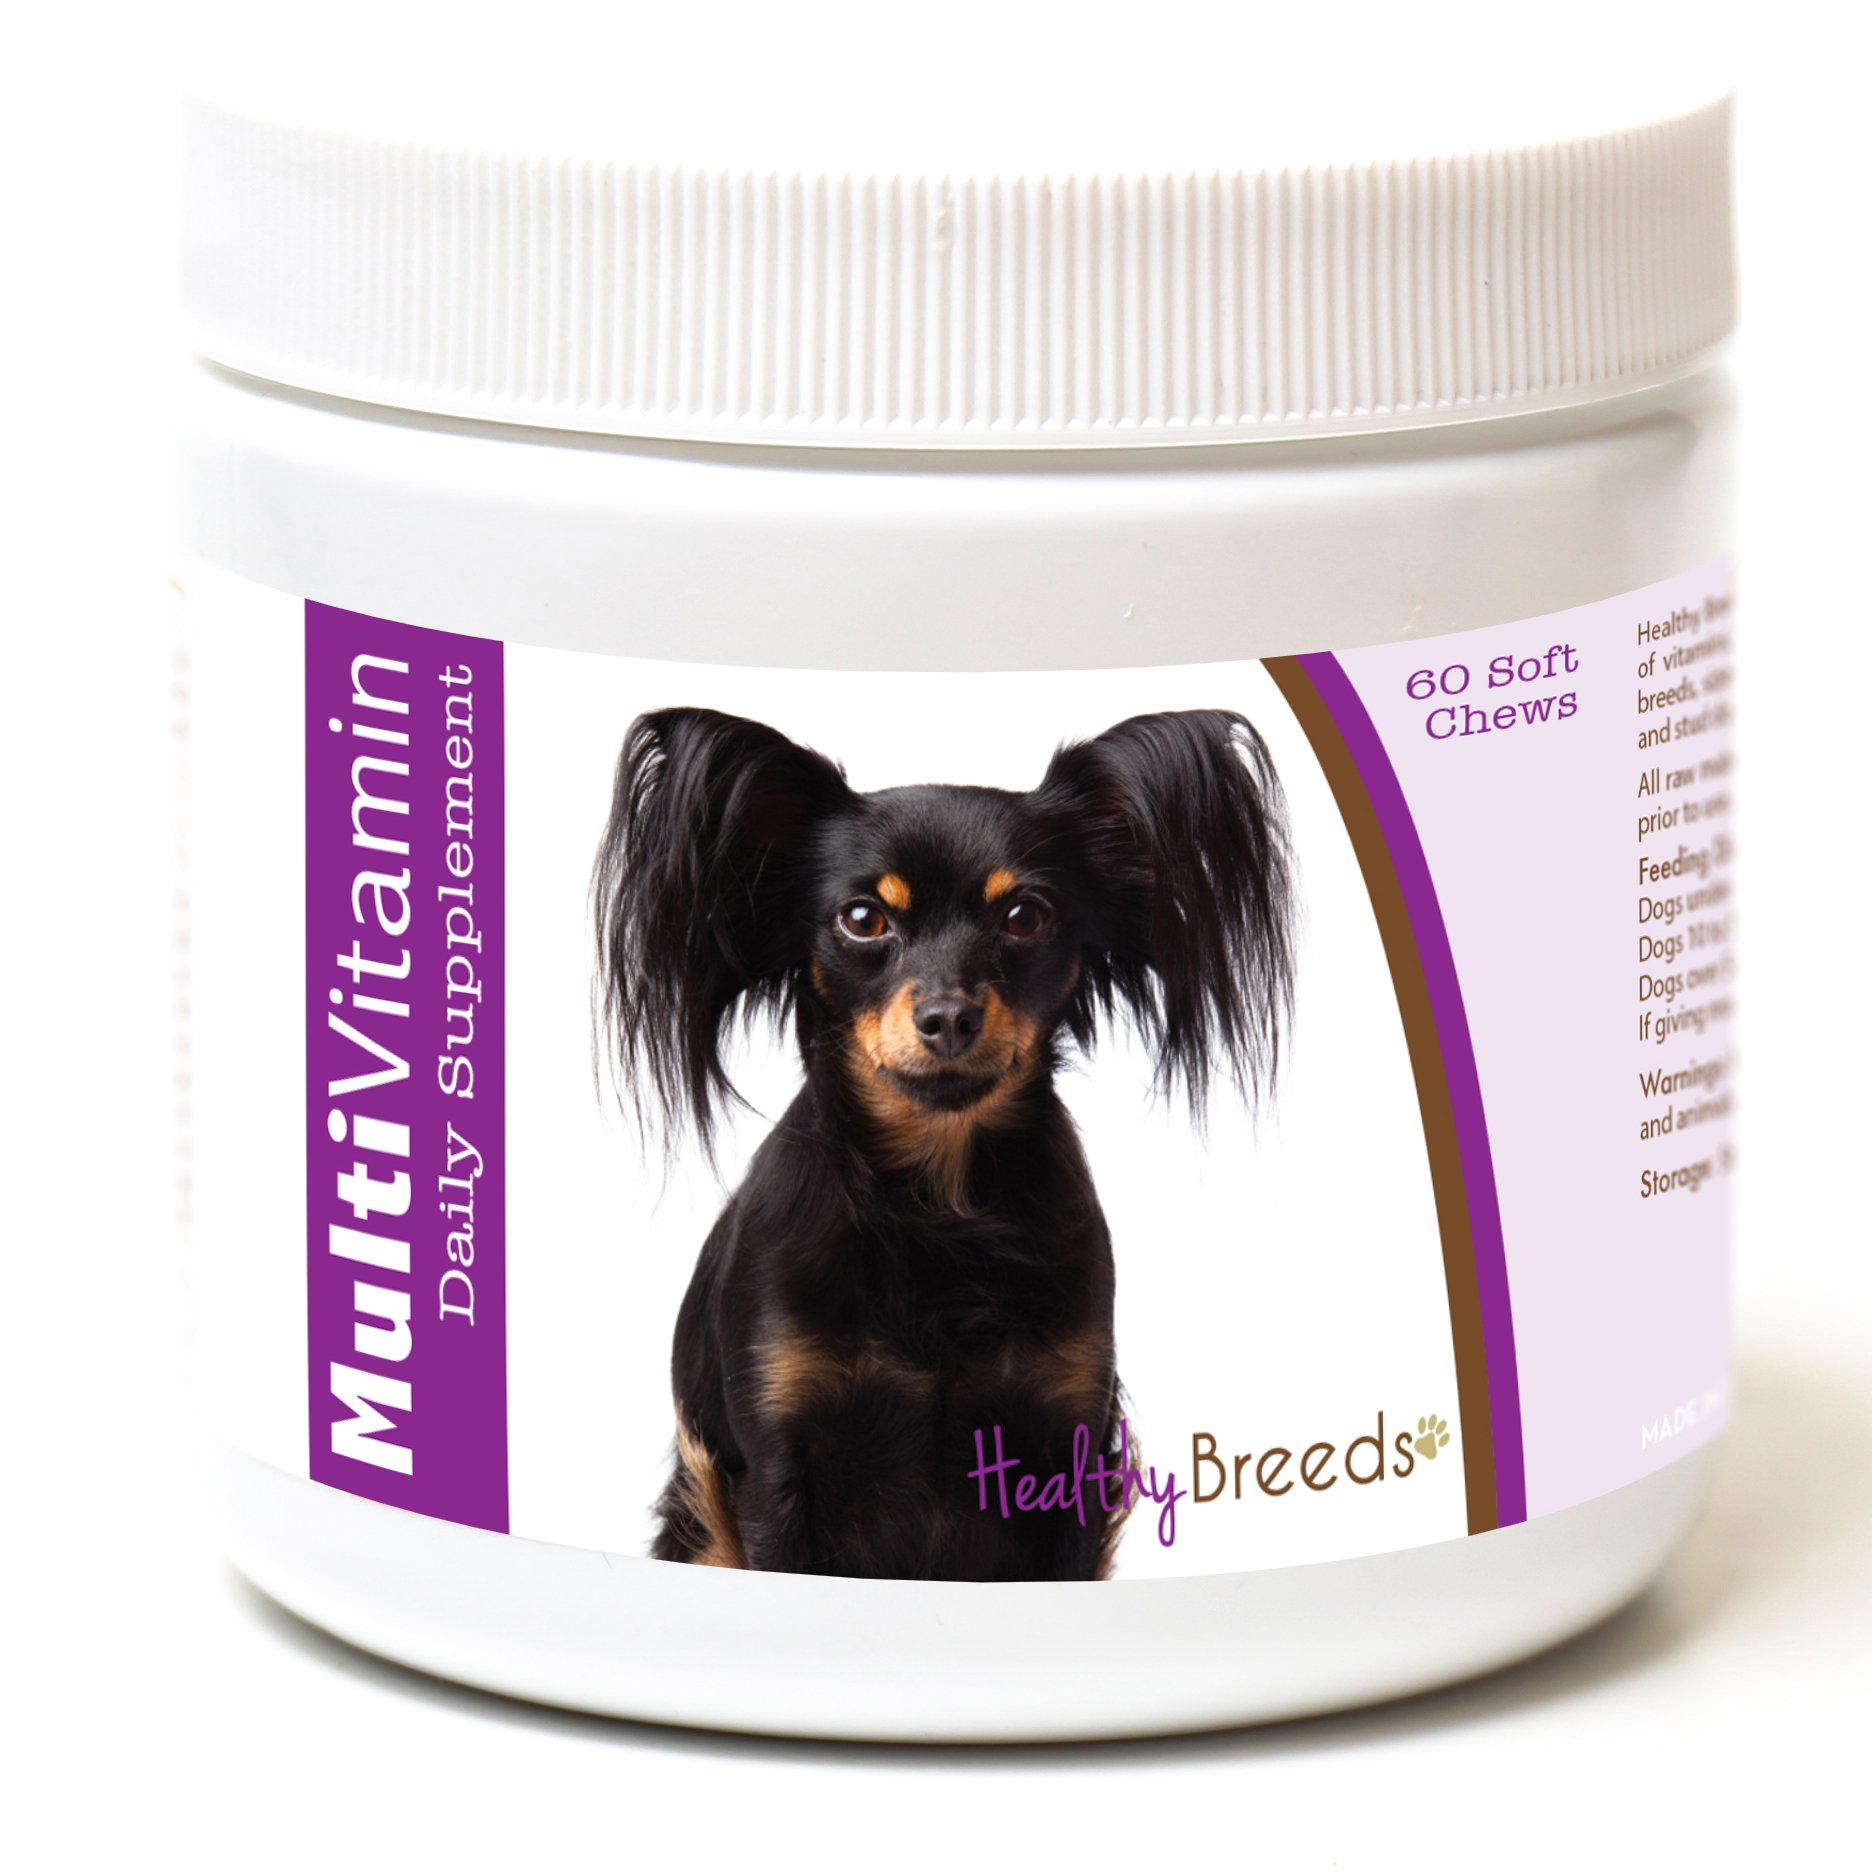 Healthy Breeds Multivitamin for Dogs Chewable for Russian Toy Terrier - Over 200 Breeds - for Small Medium & Large Breeds - Easier Than Liquid or Powders - 60 Chews